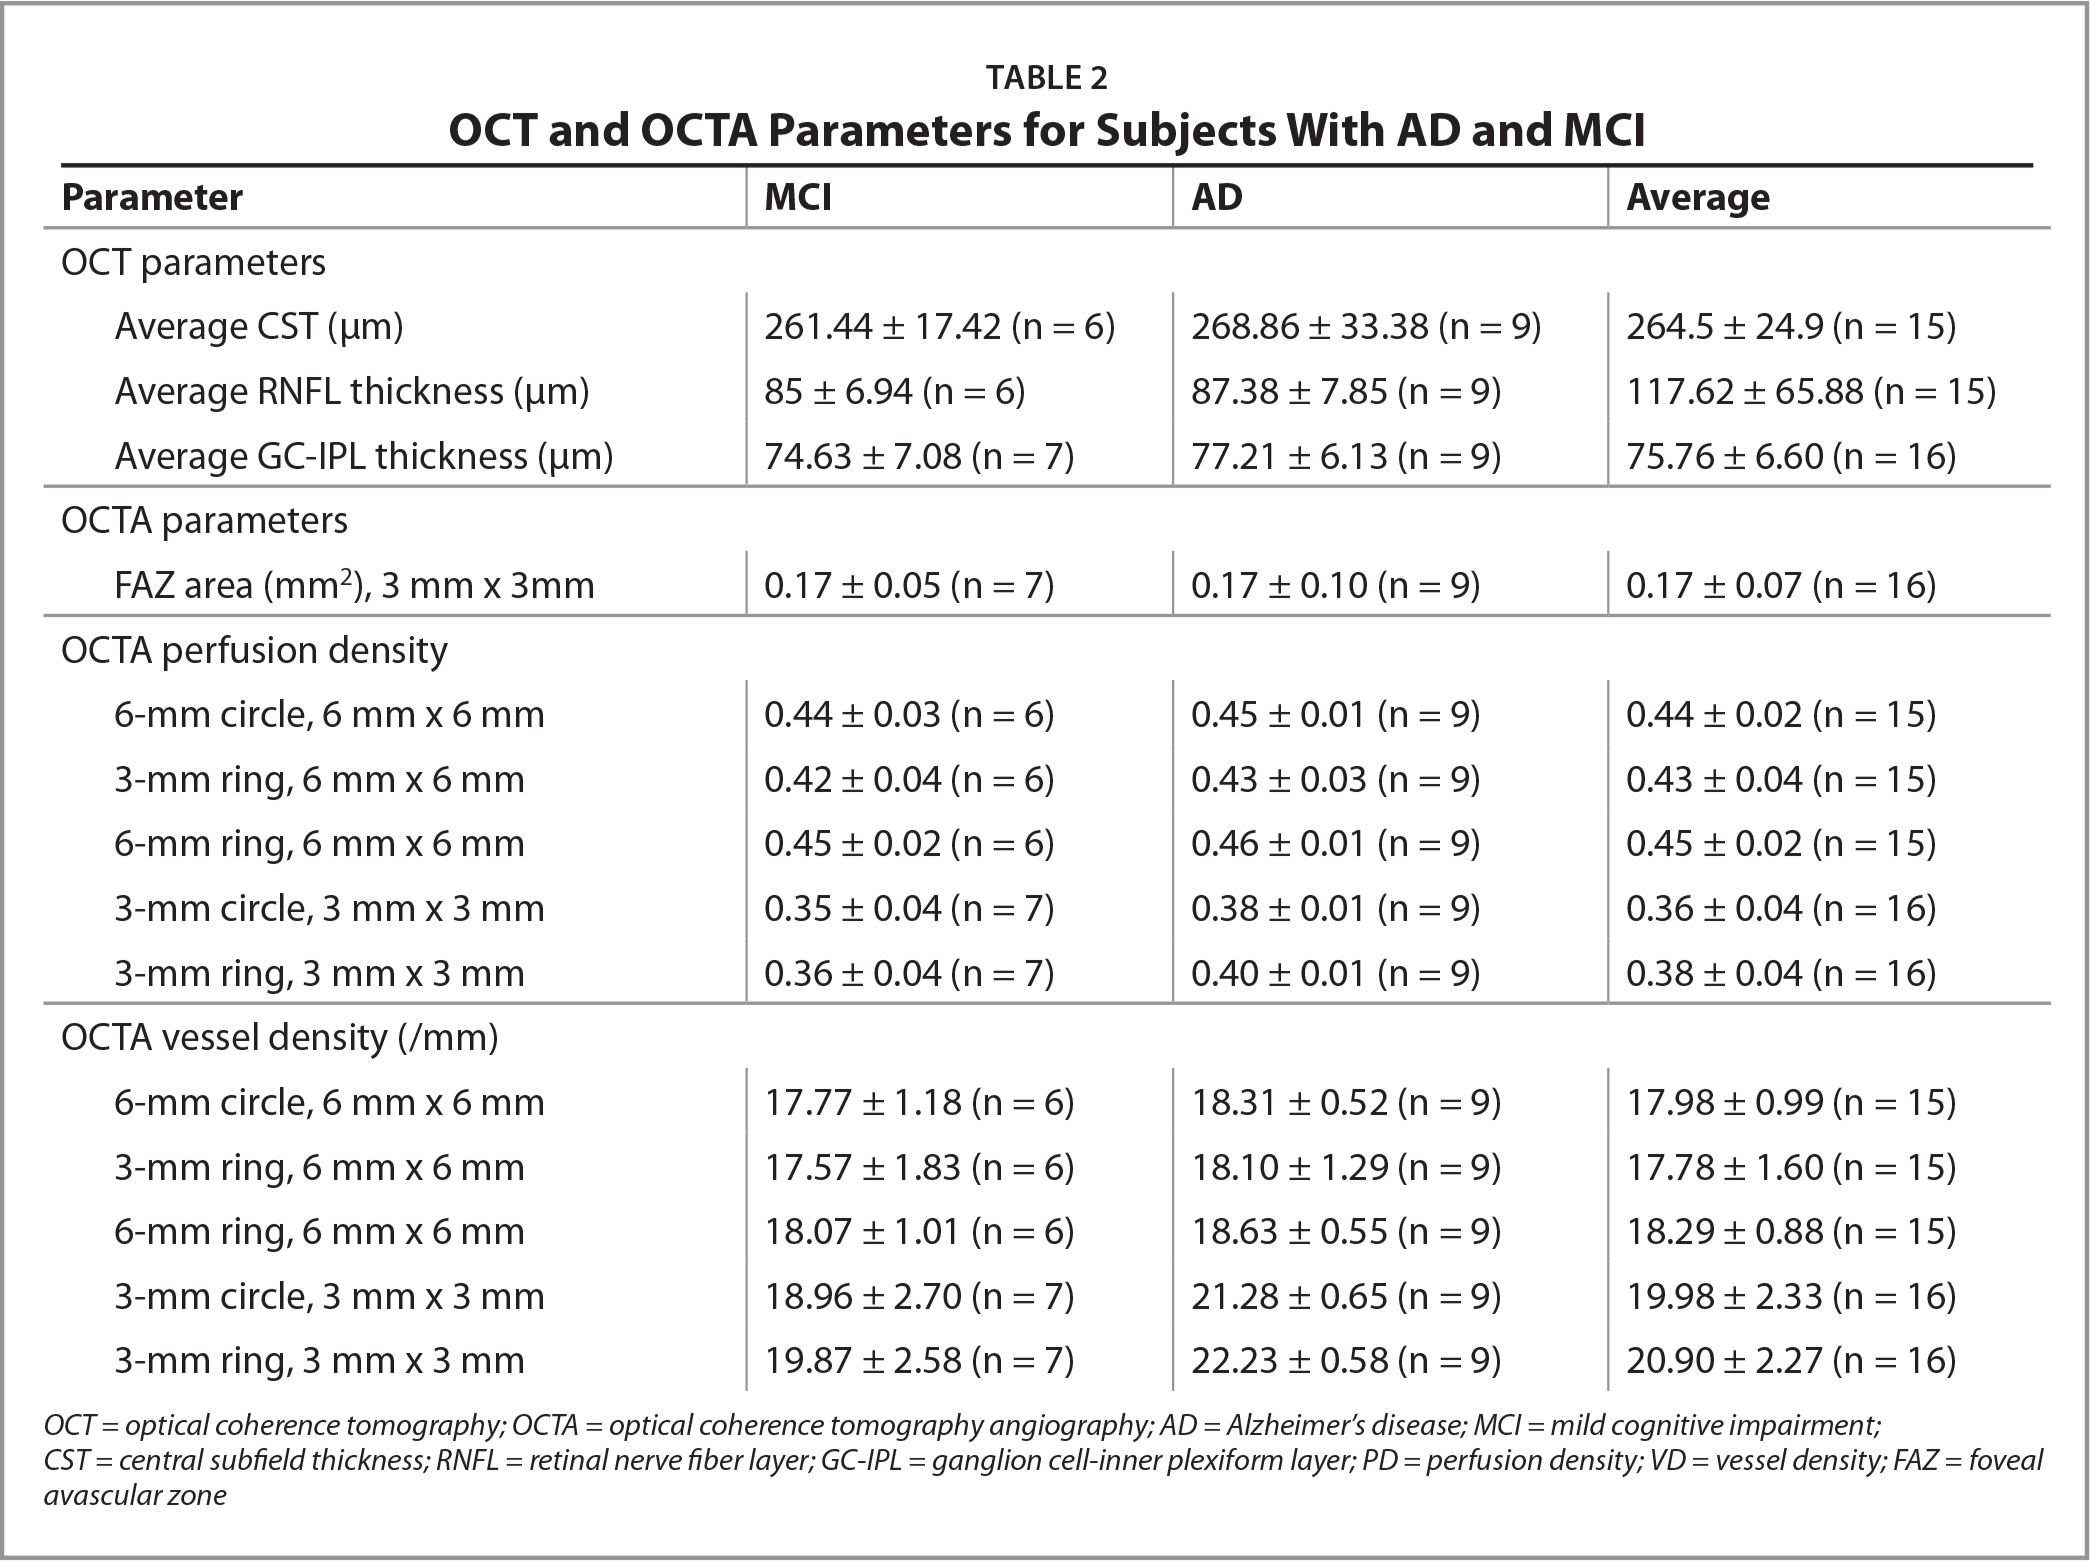 OCT and OCTA Parameters for Subjects With AD and MCI